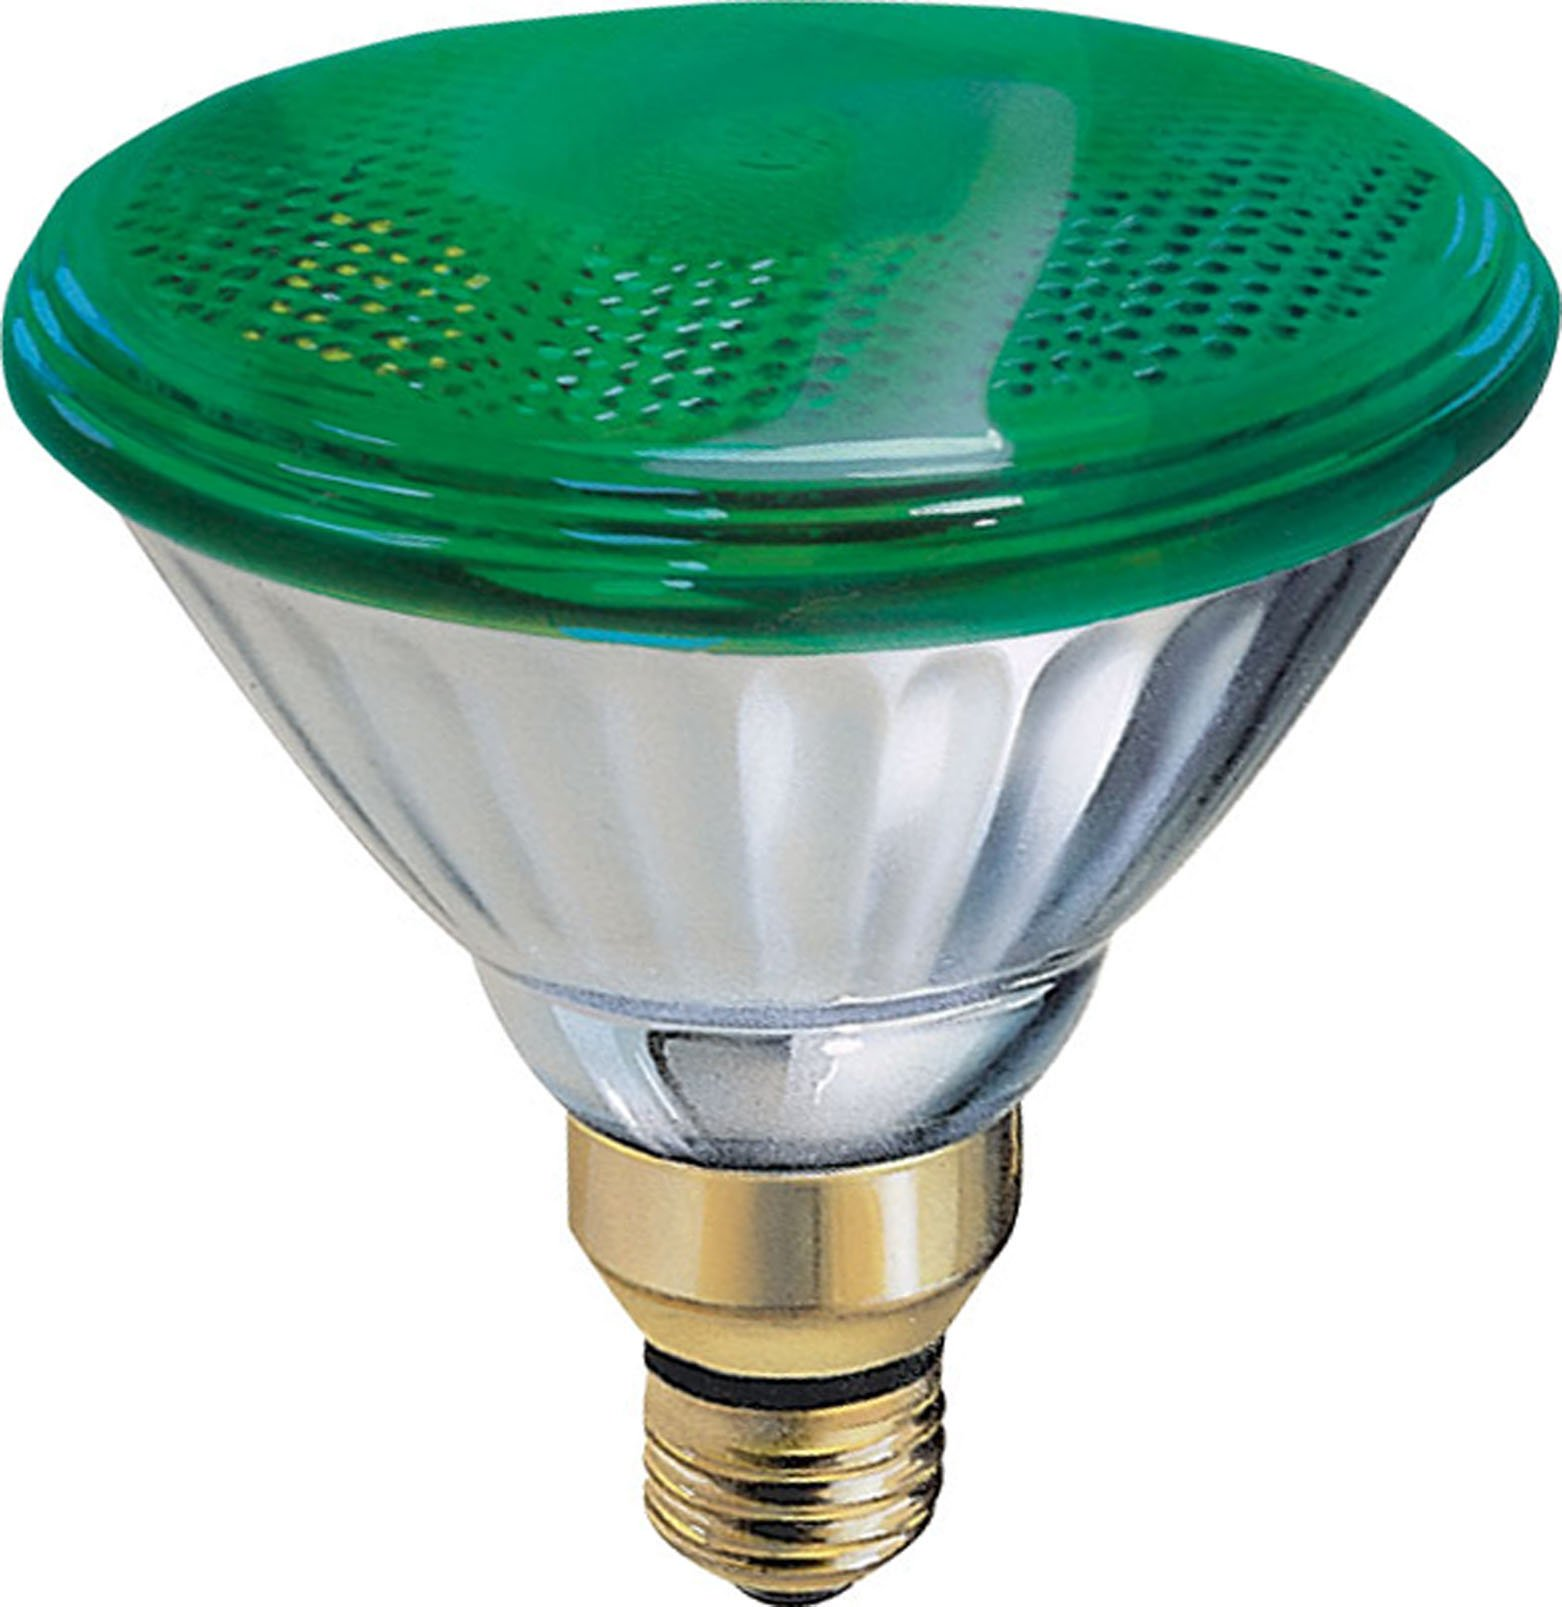 GE Lighting 13474 85-Watt Outdoor PAR38 Incandescent Light Bulb, Green by GE Lighting (Image #1)